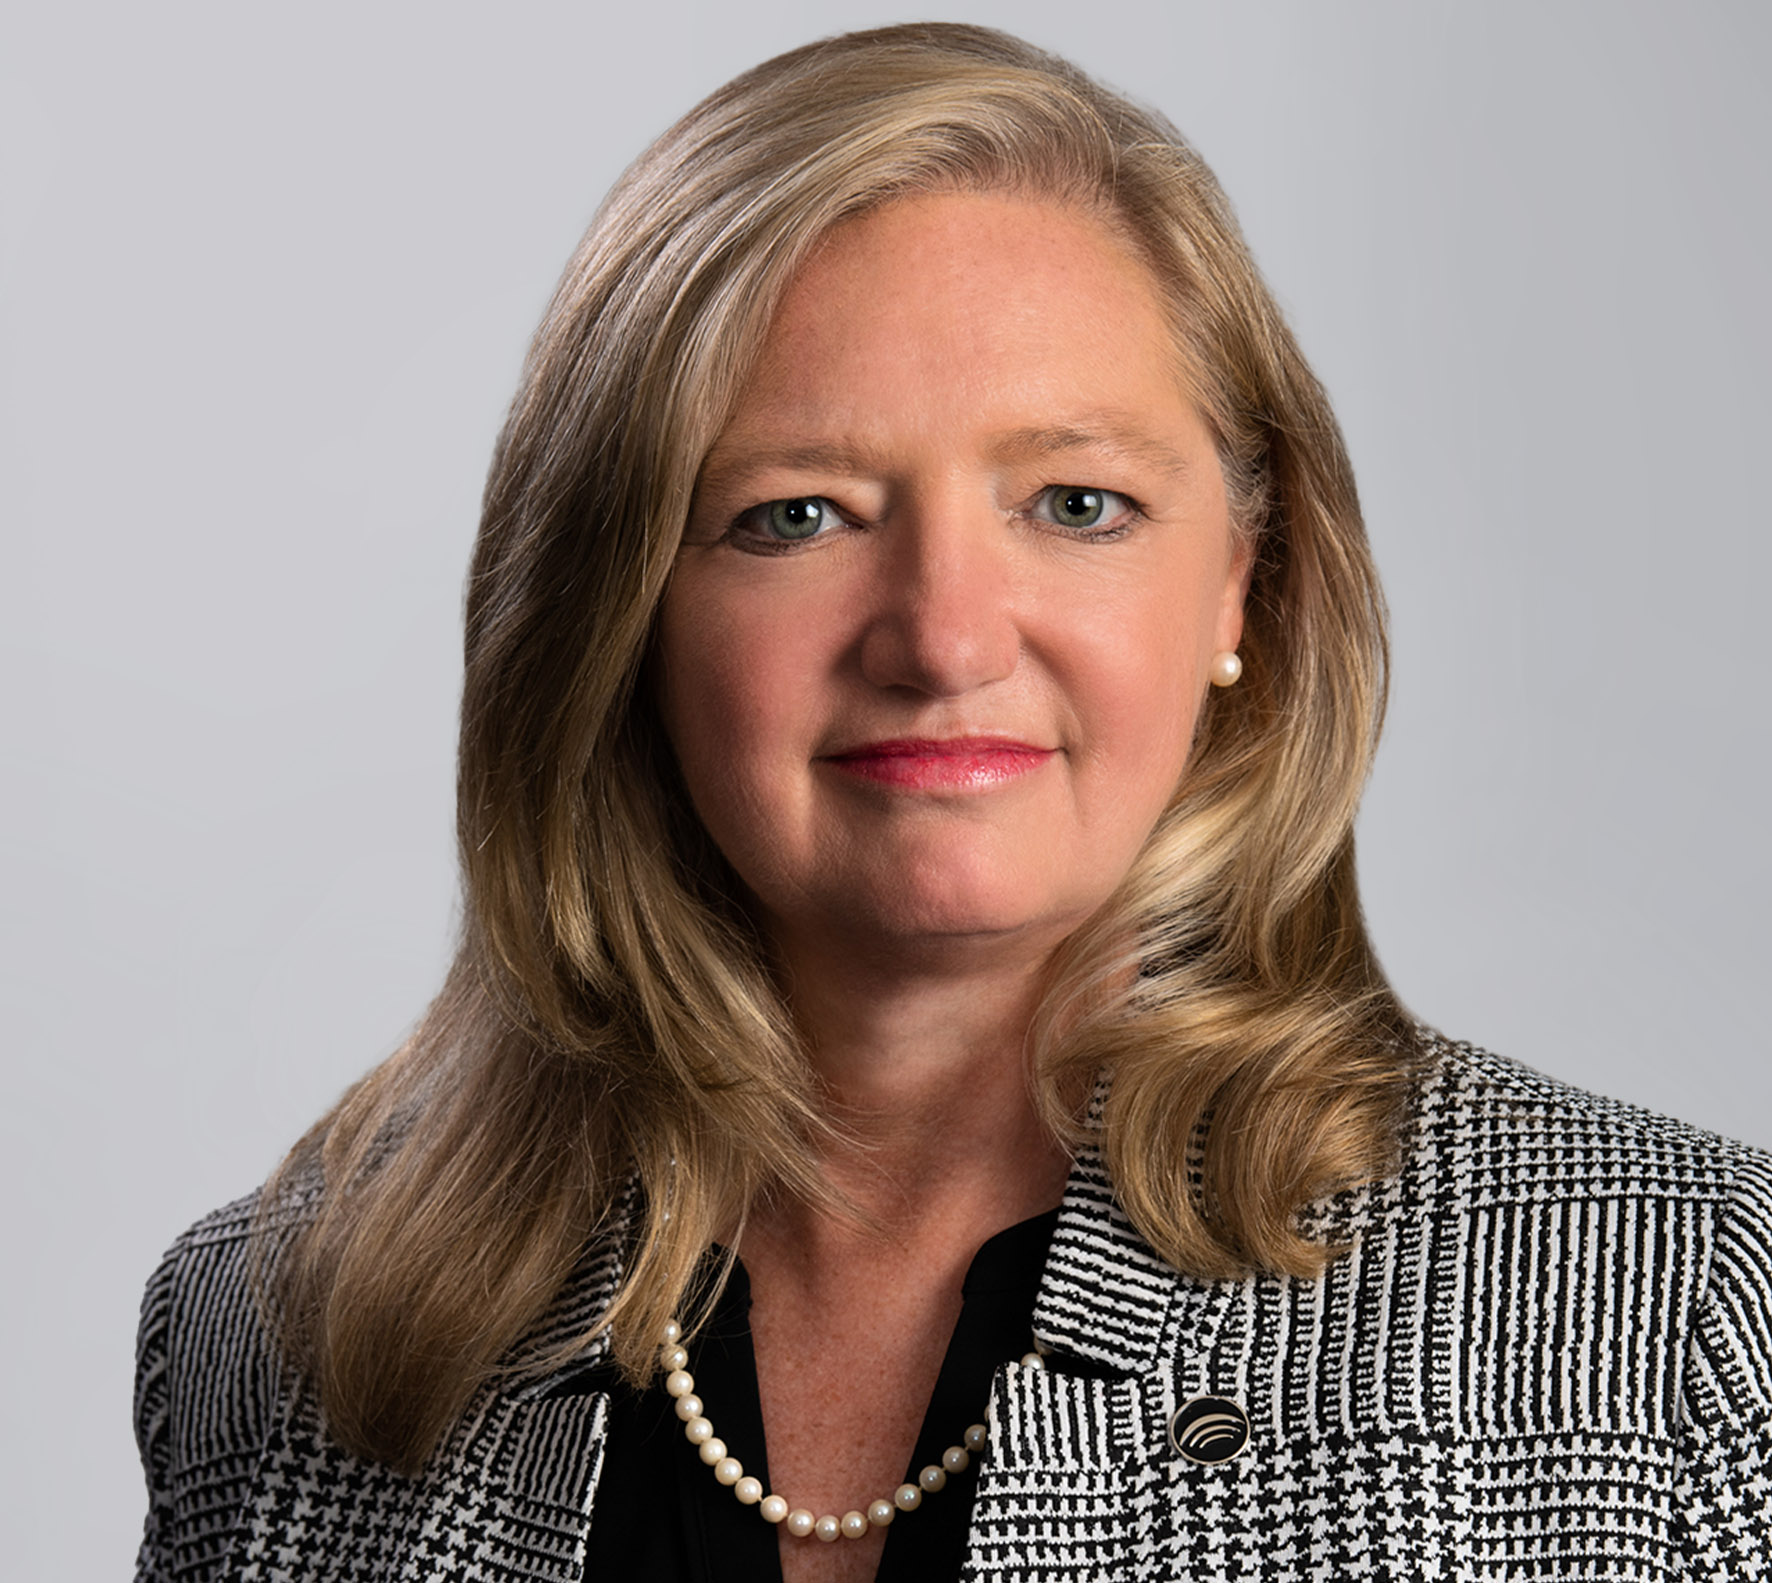 Leslie Chaplin, Executive Vice President and Director of Human Resources